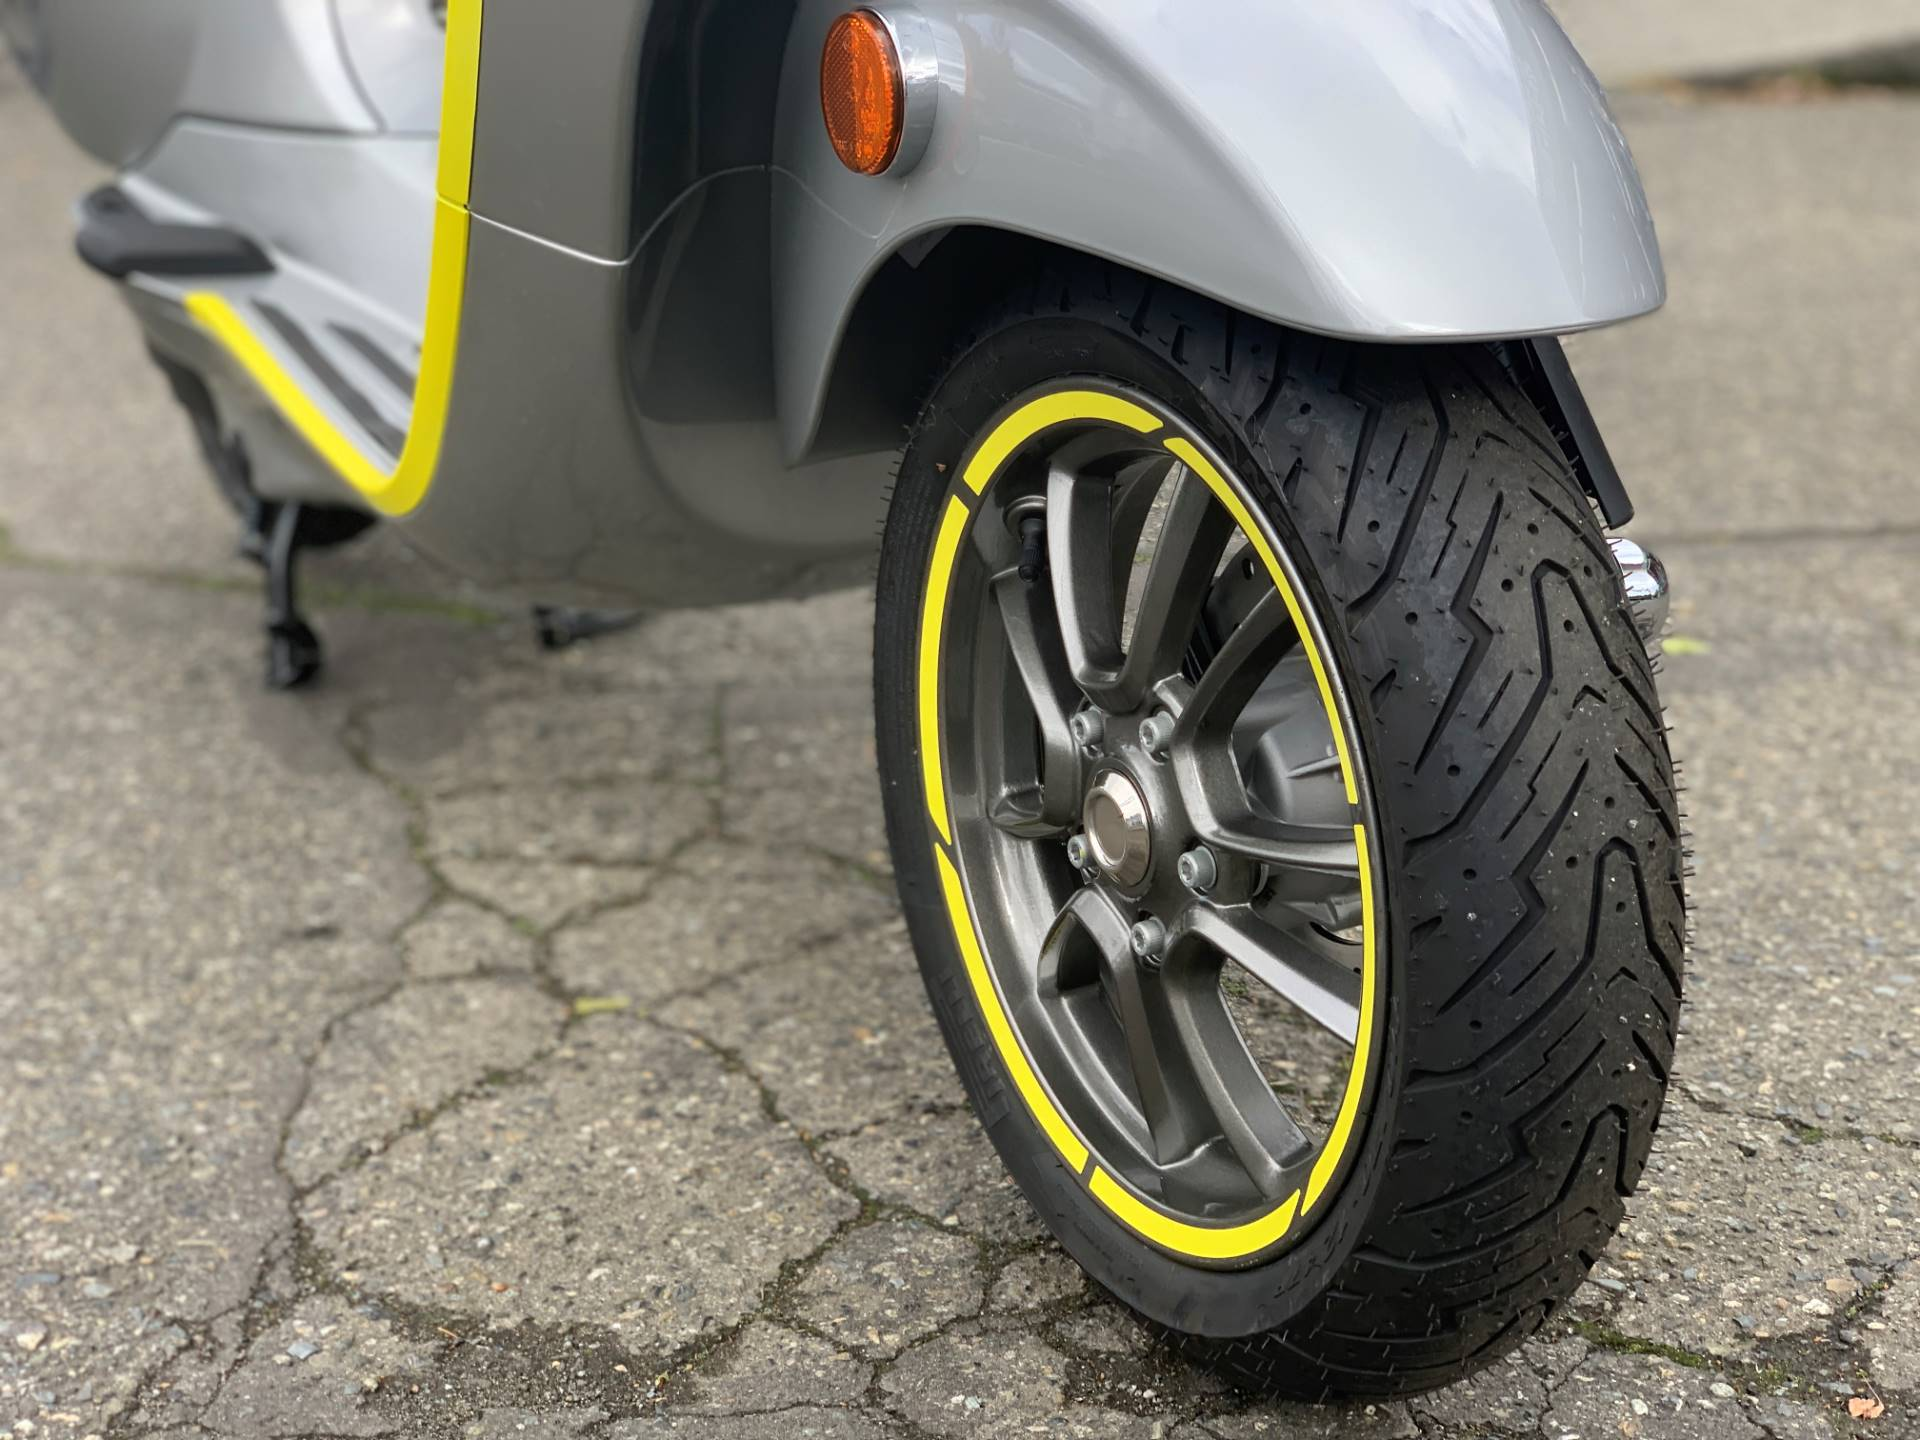 2021 Vespa Elettrica 45 MPH in Bellevue, Washington - Photo 3